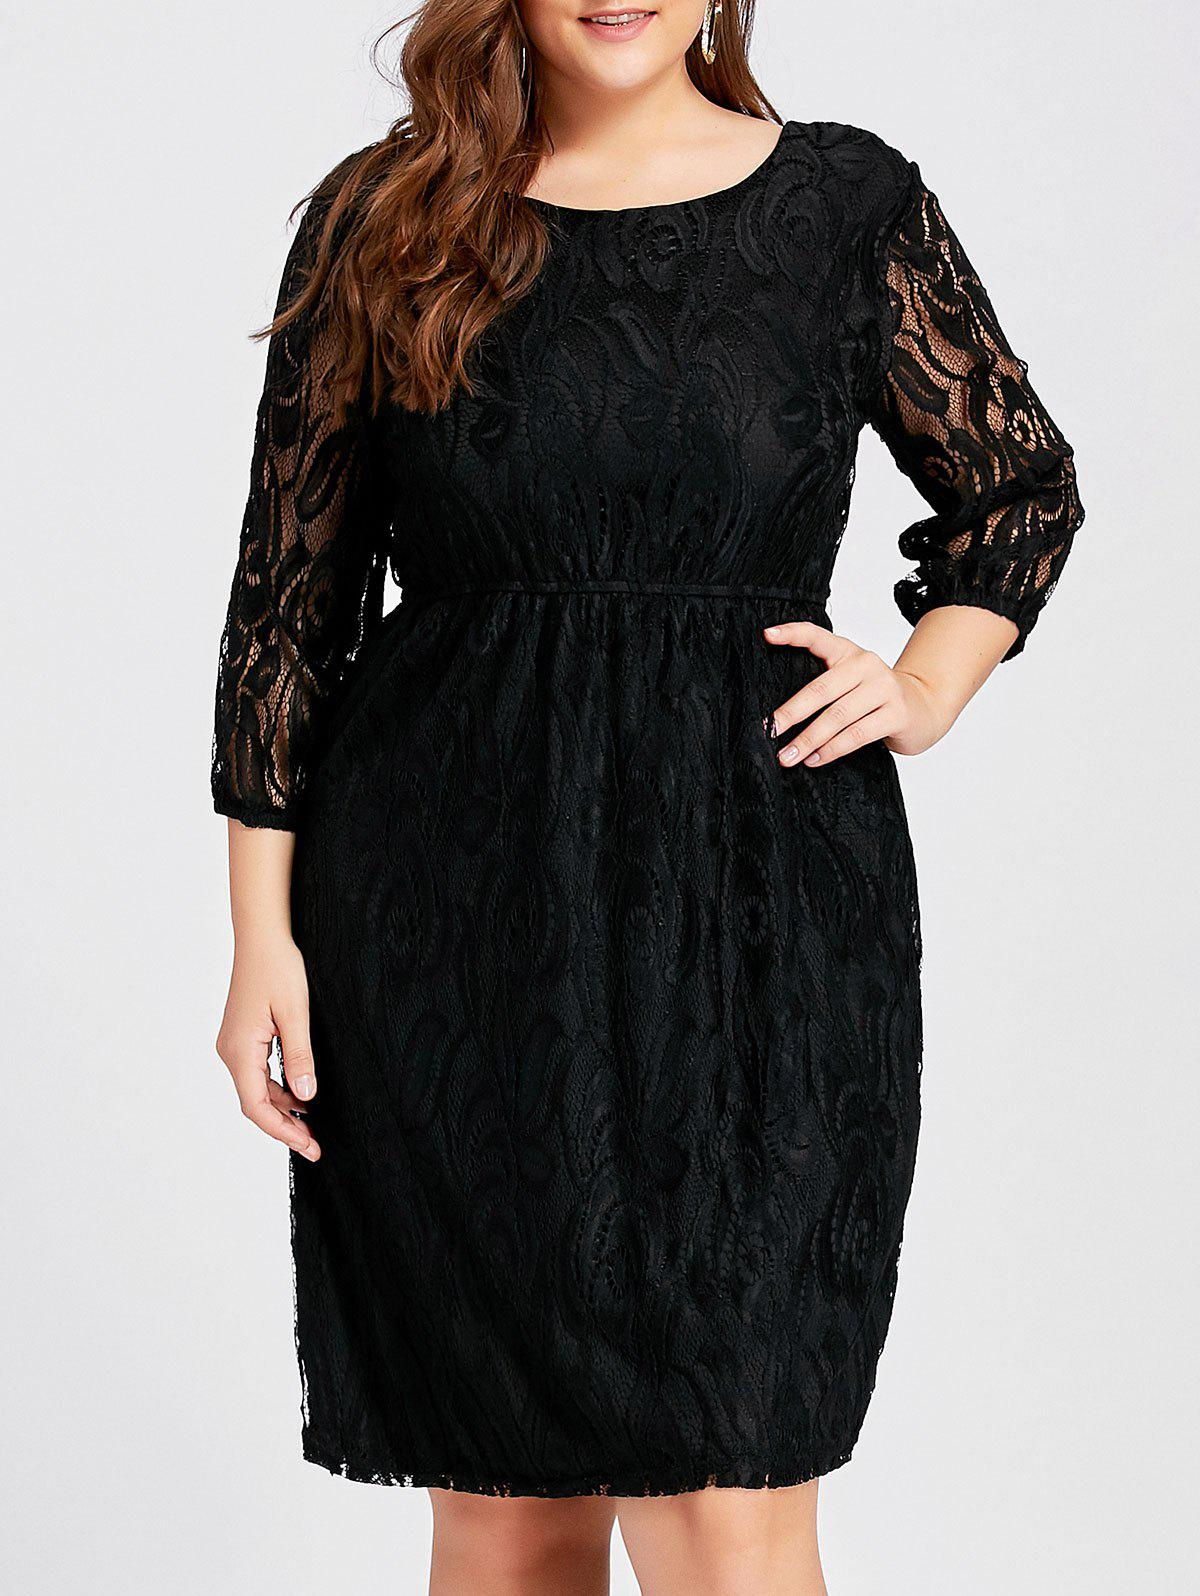 Cutout  Empire Waist Plus Size Lace DressWOMEN<br><br>Size: 4XL; Color: BLACK; Style: Casual; Material: Lace; Silhouette: A-Line; Dresses Length: Knee-Length; Neckline: Round Collar; Sleeve Type: Lantern Sleeve; Sleeve Length: 3/4 Length Sleeves; Embellishment: Hollow Out; Pattern Type: Solid Color; With Belt: No; Season: Fall,Winter; Weight: 0.4200kg; Package Contents: 1 x Dress;